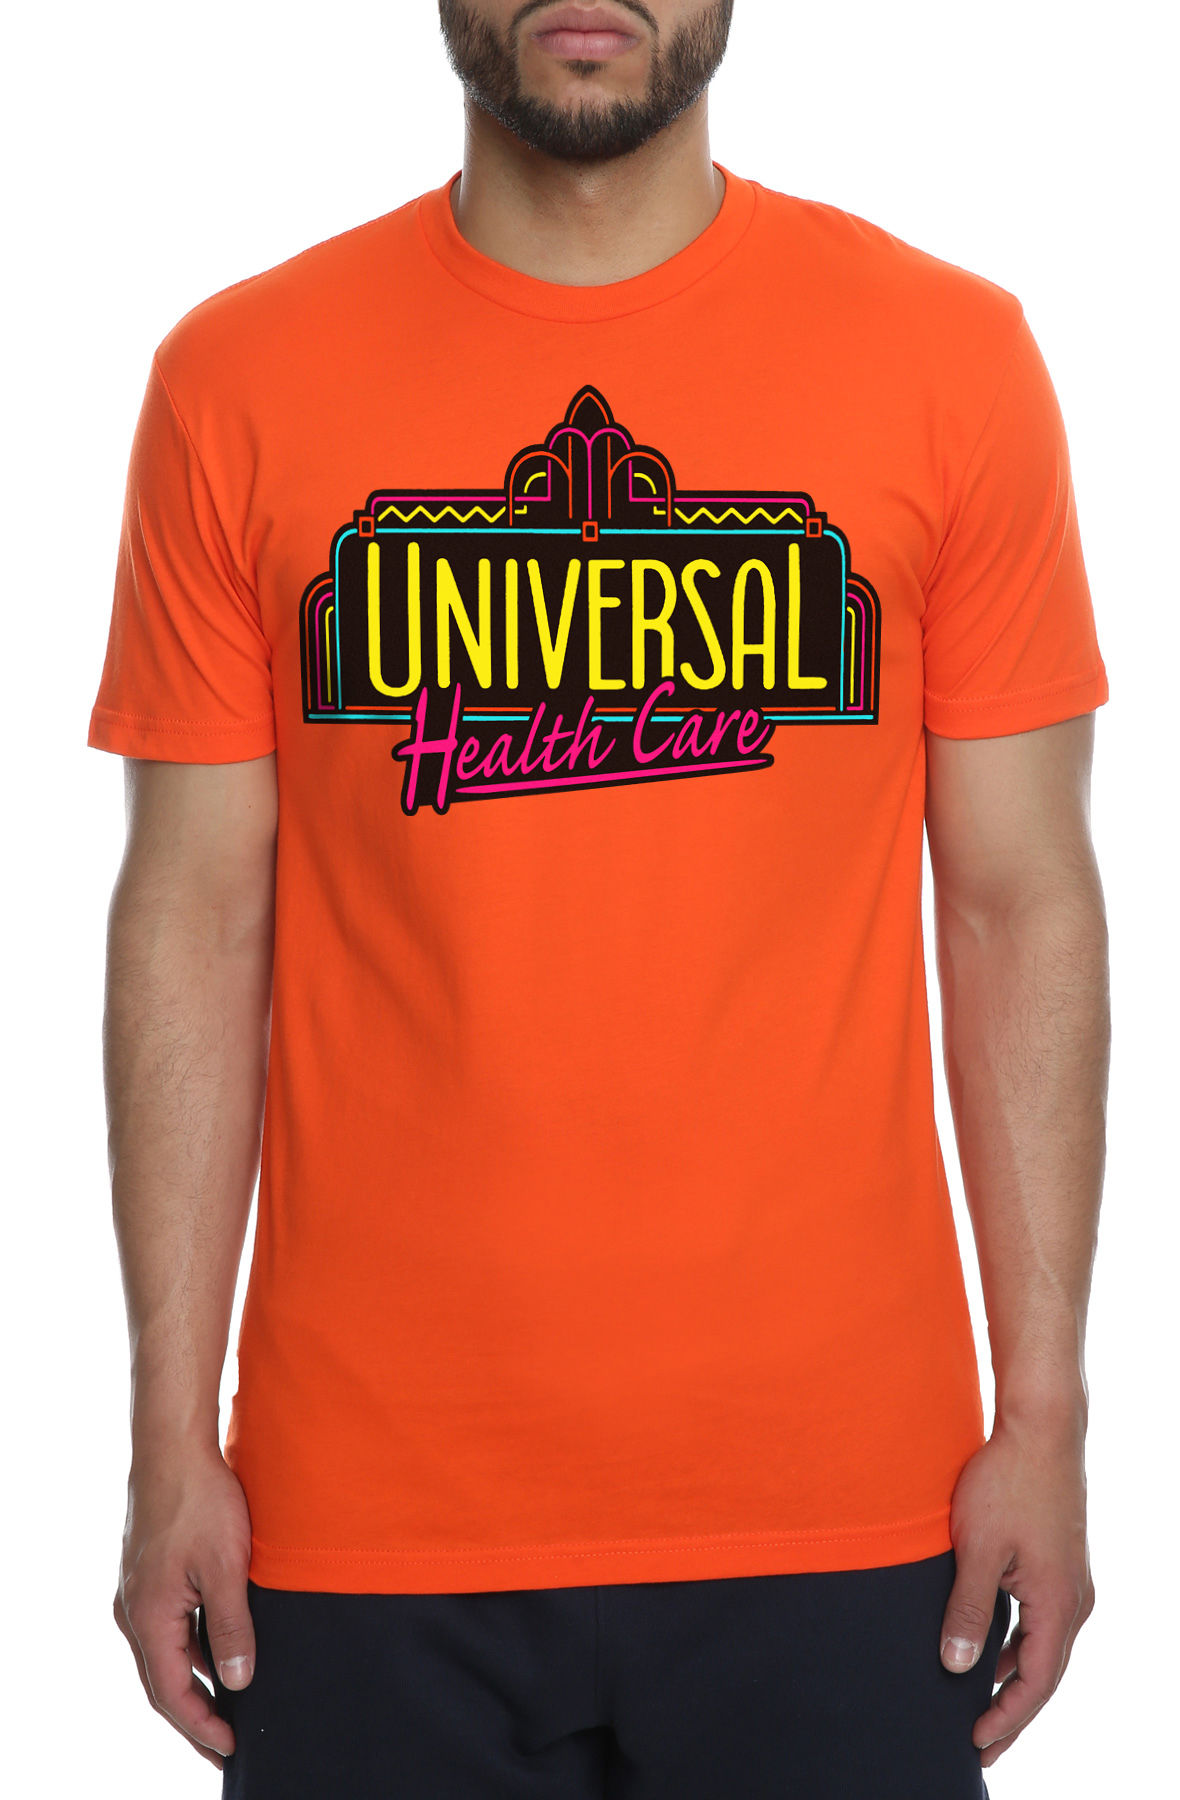 Image of The Universal Health Care Tee in Orange